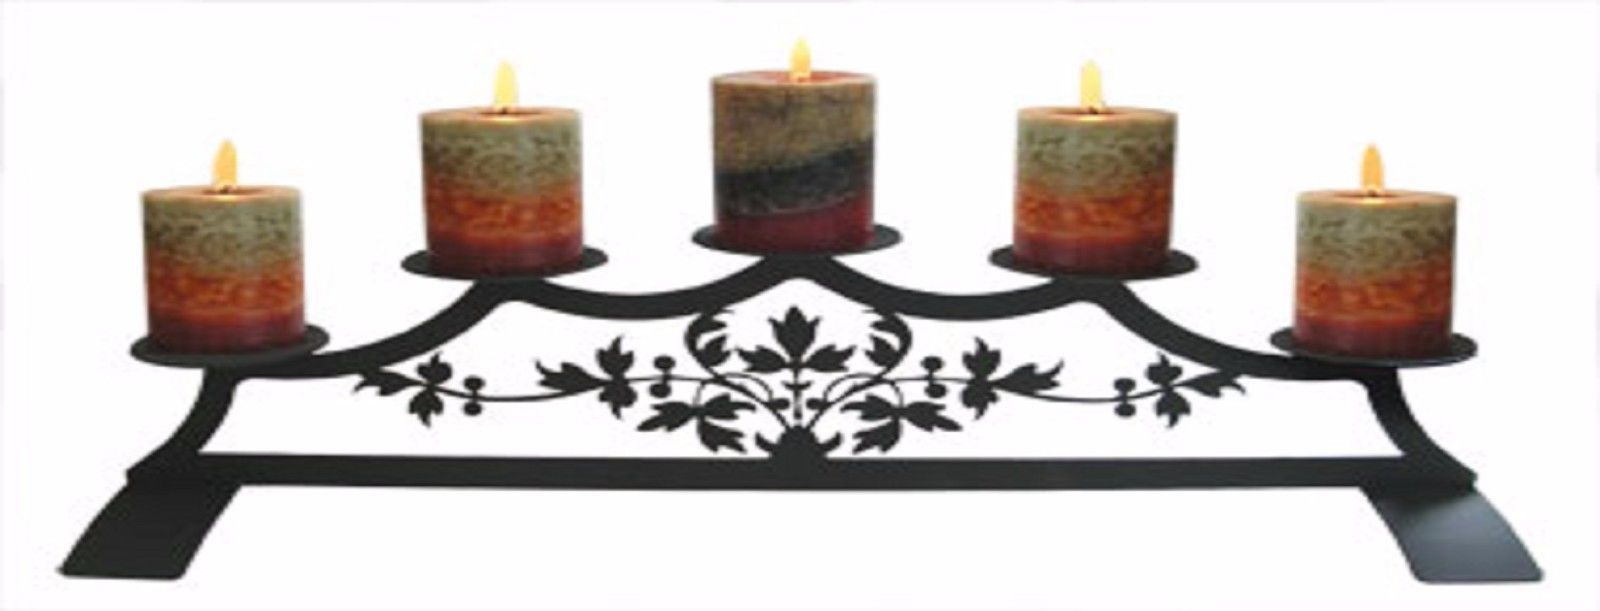 fireplace mantel pillar candle holder candle holders accessories